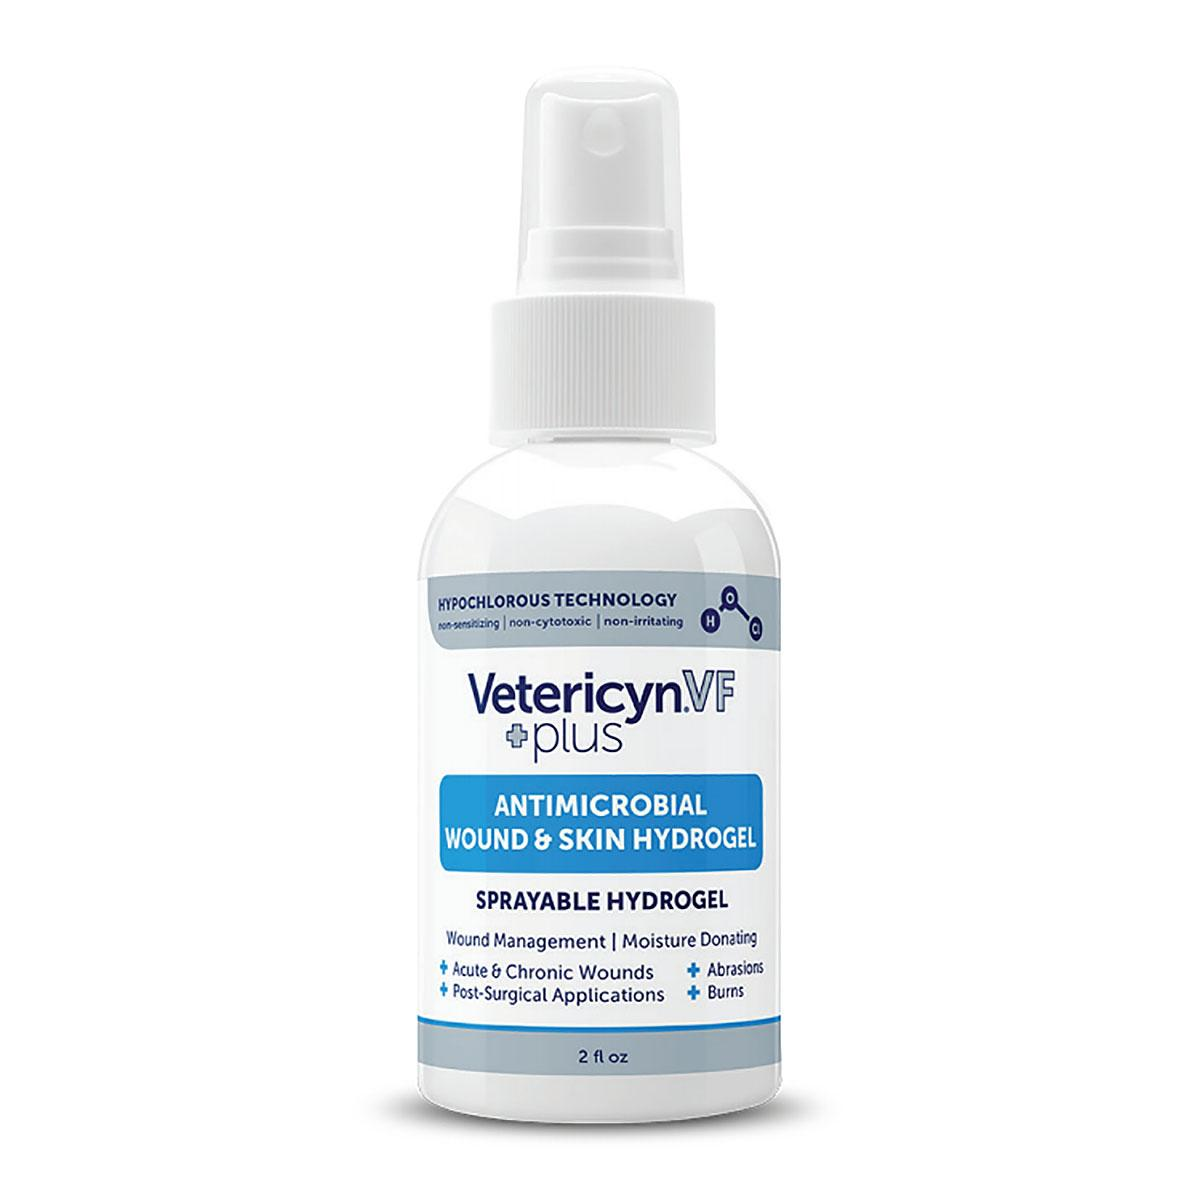 Vetericyn VF Plus Antimicrobial Wound & Skin Care Hydrogel for Pets - 2 ounces